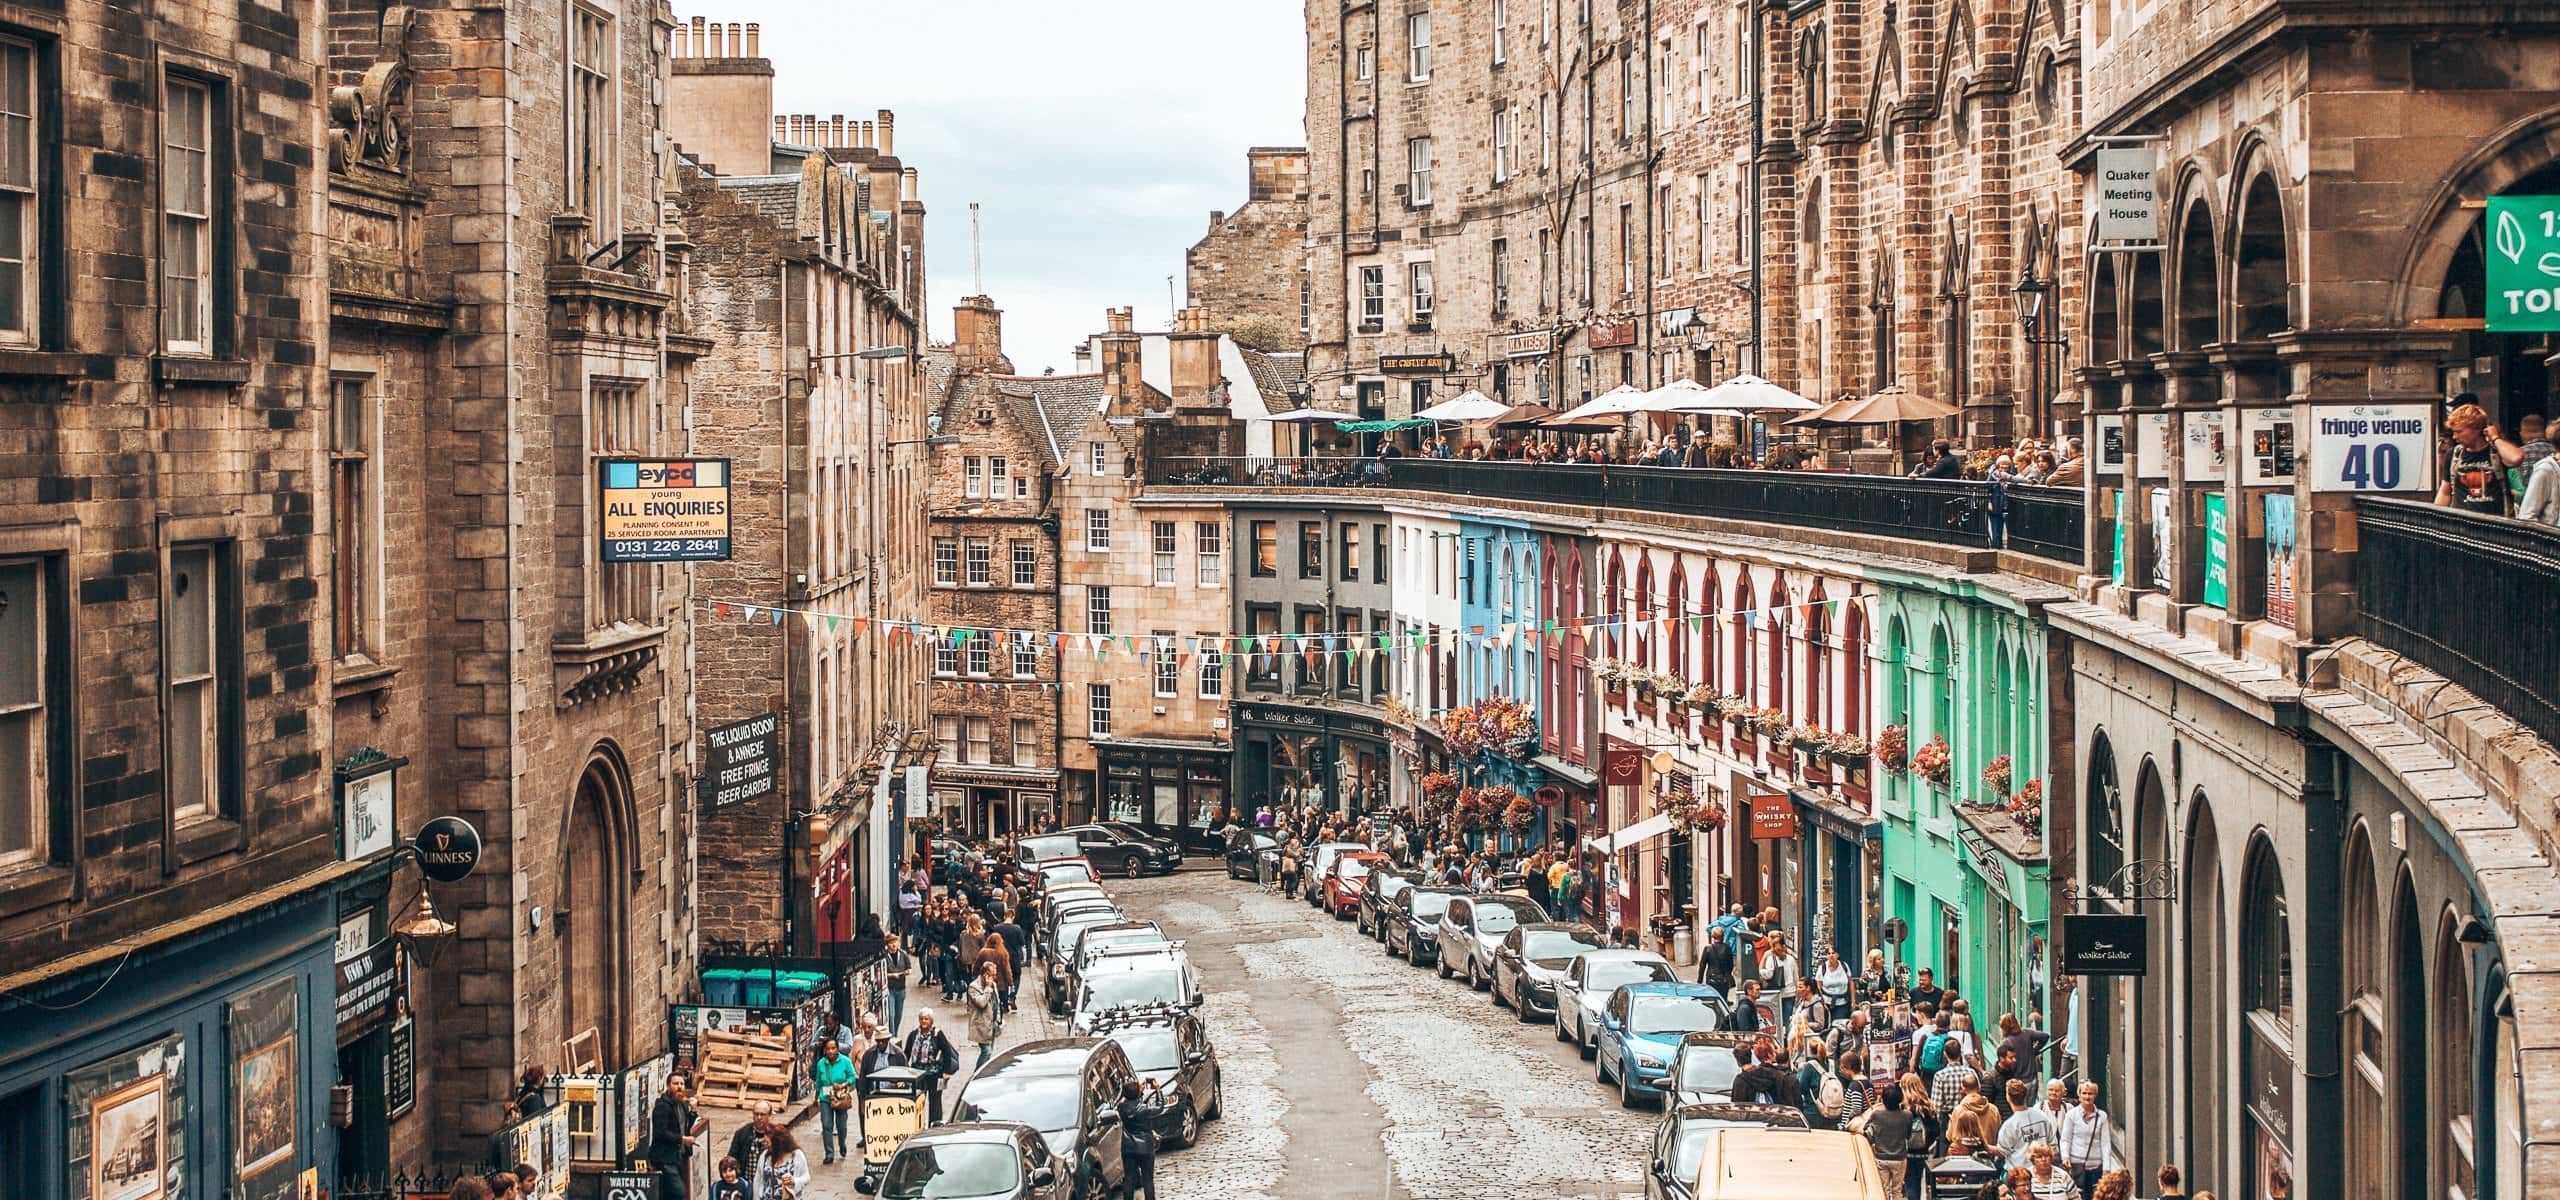 Looking down crowded West Bow in Edinburgh, Scotland